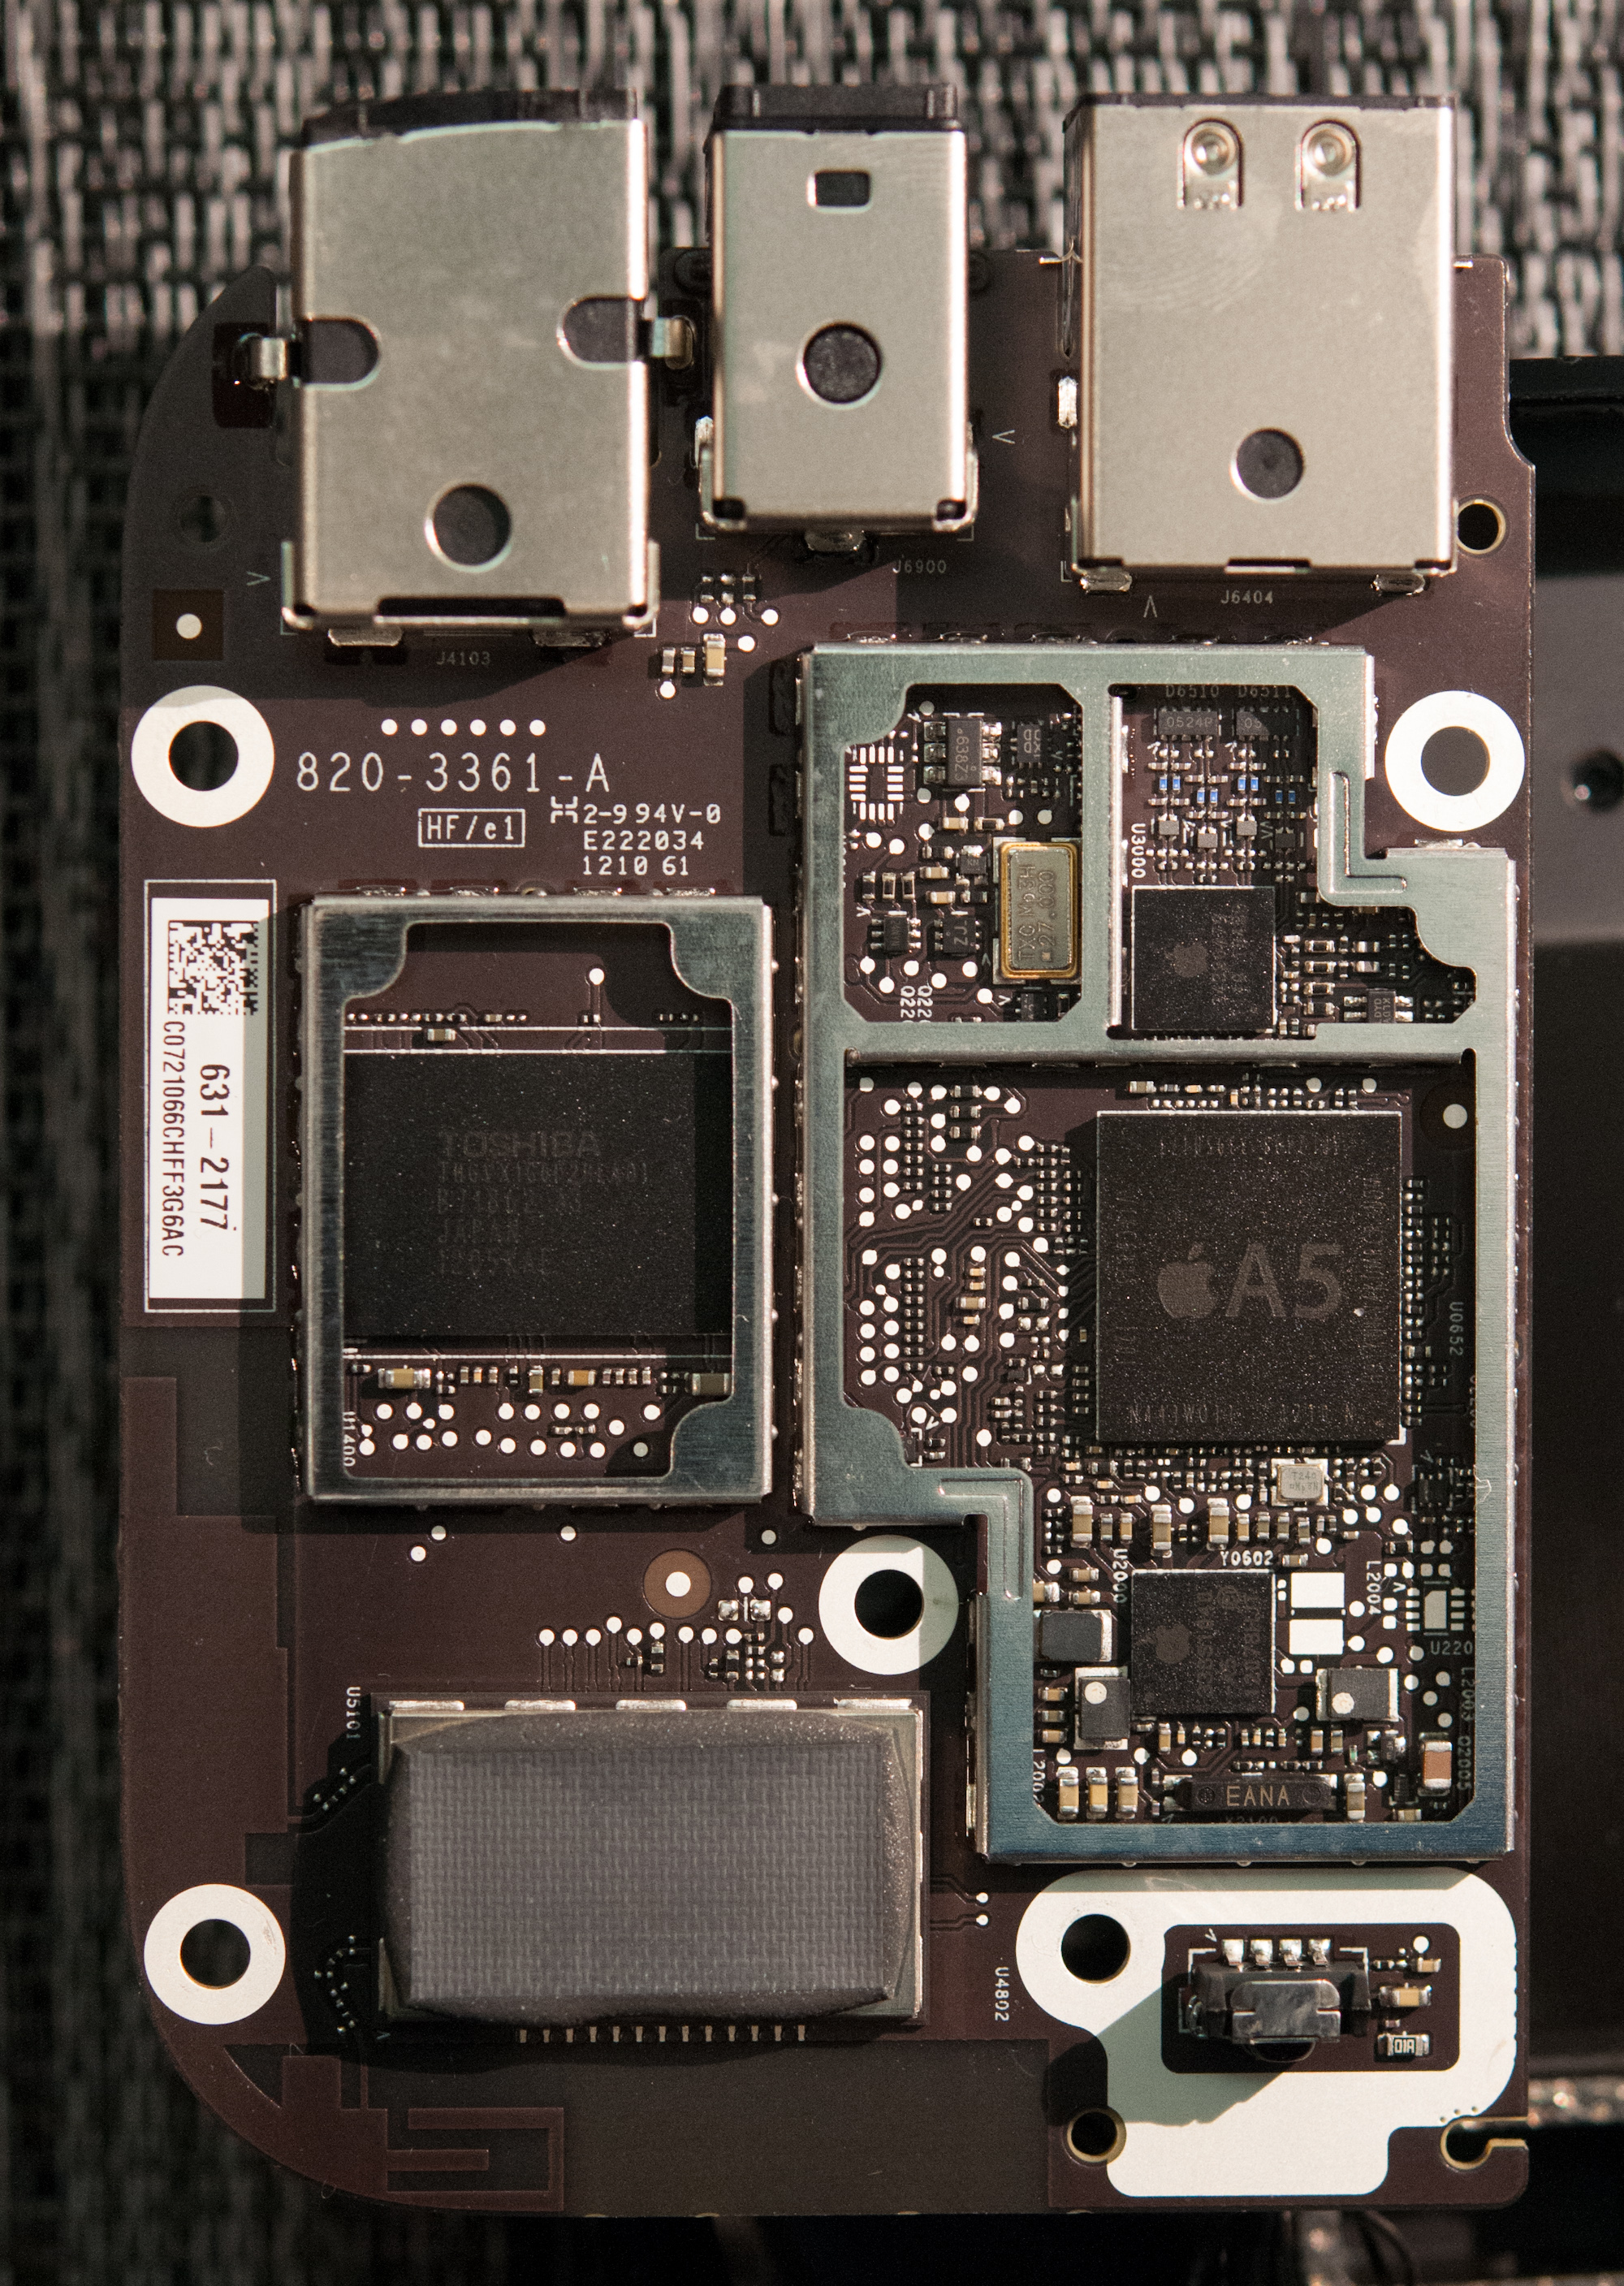 Inside Apple Tv 3 Single Core A5 Same Power Draw 2nd Try How To Find A Short Circuit In Macbook Logic Board 2012 Review 1080p And Better Wifi